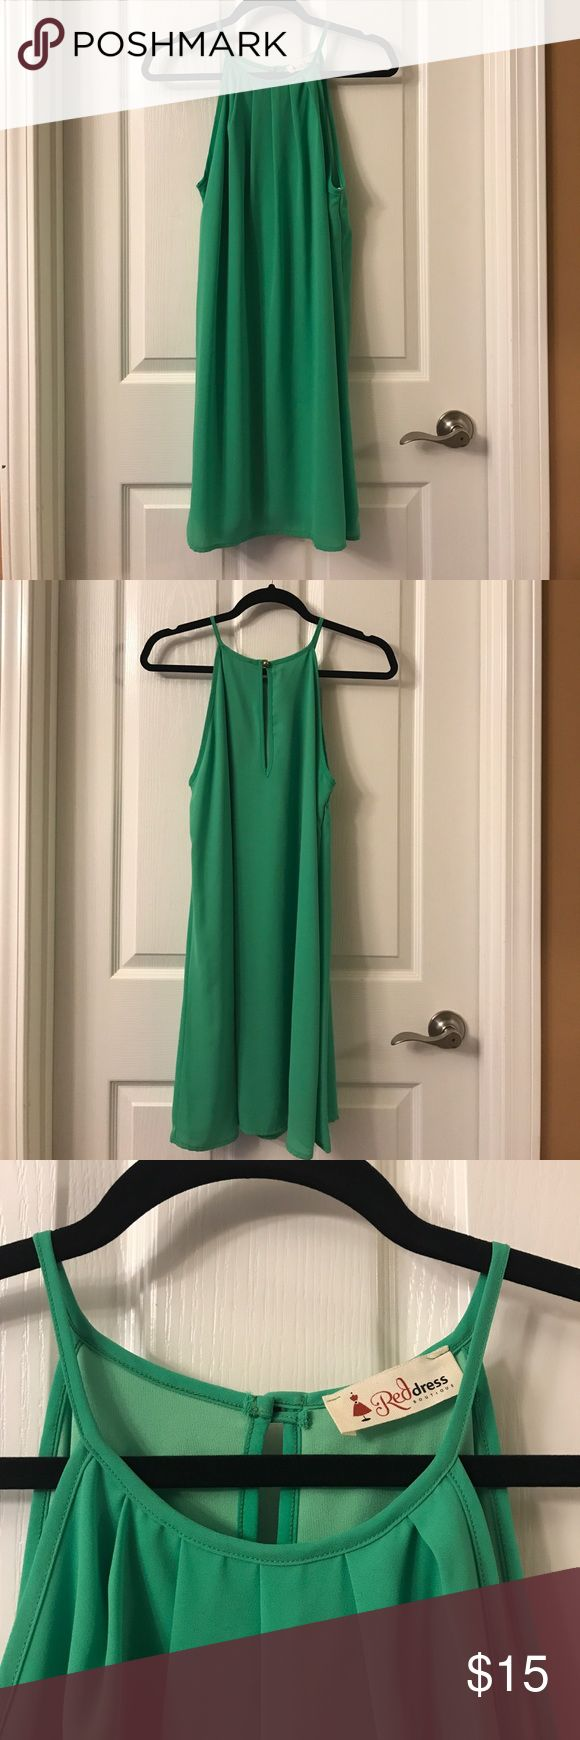 Red Dress Boutique Kelly Green Dress Kelly green dress. Size small. The Red Dress Boutique Dresses